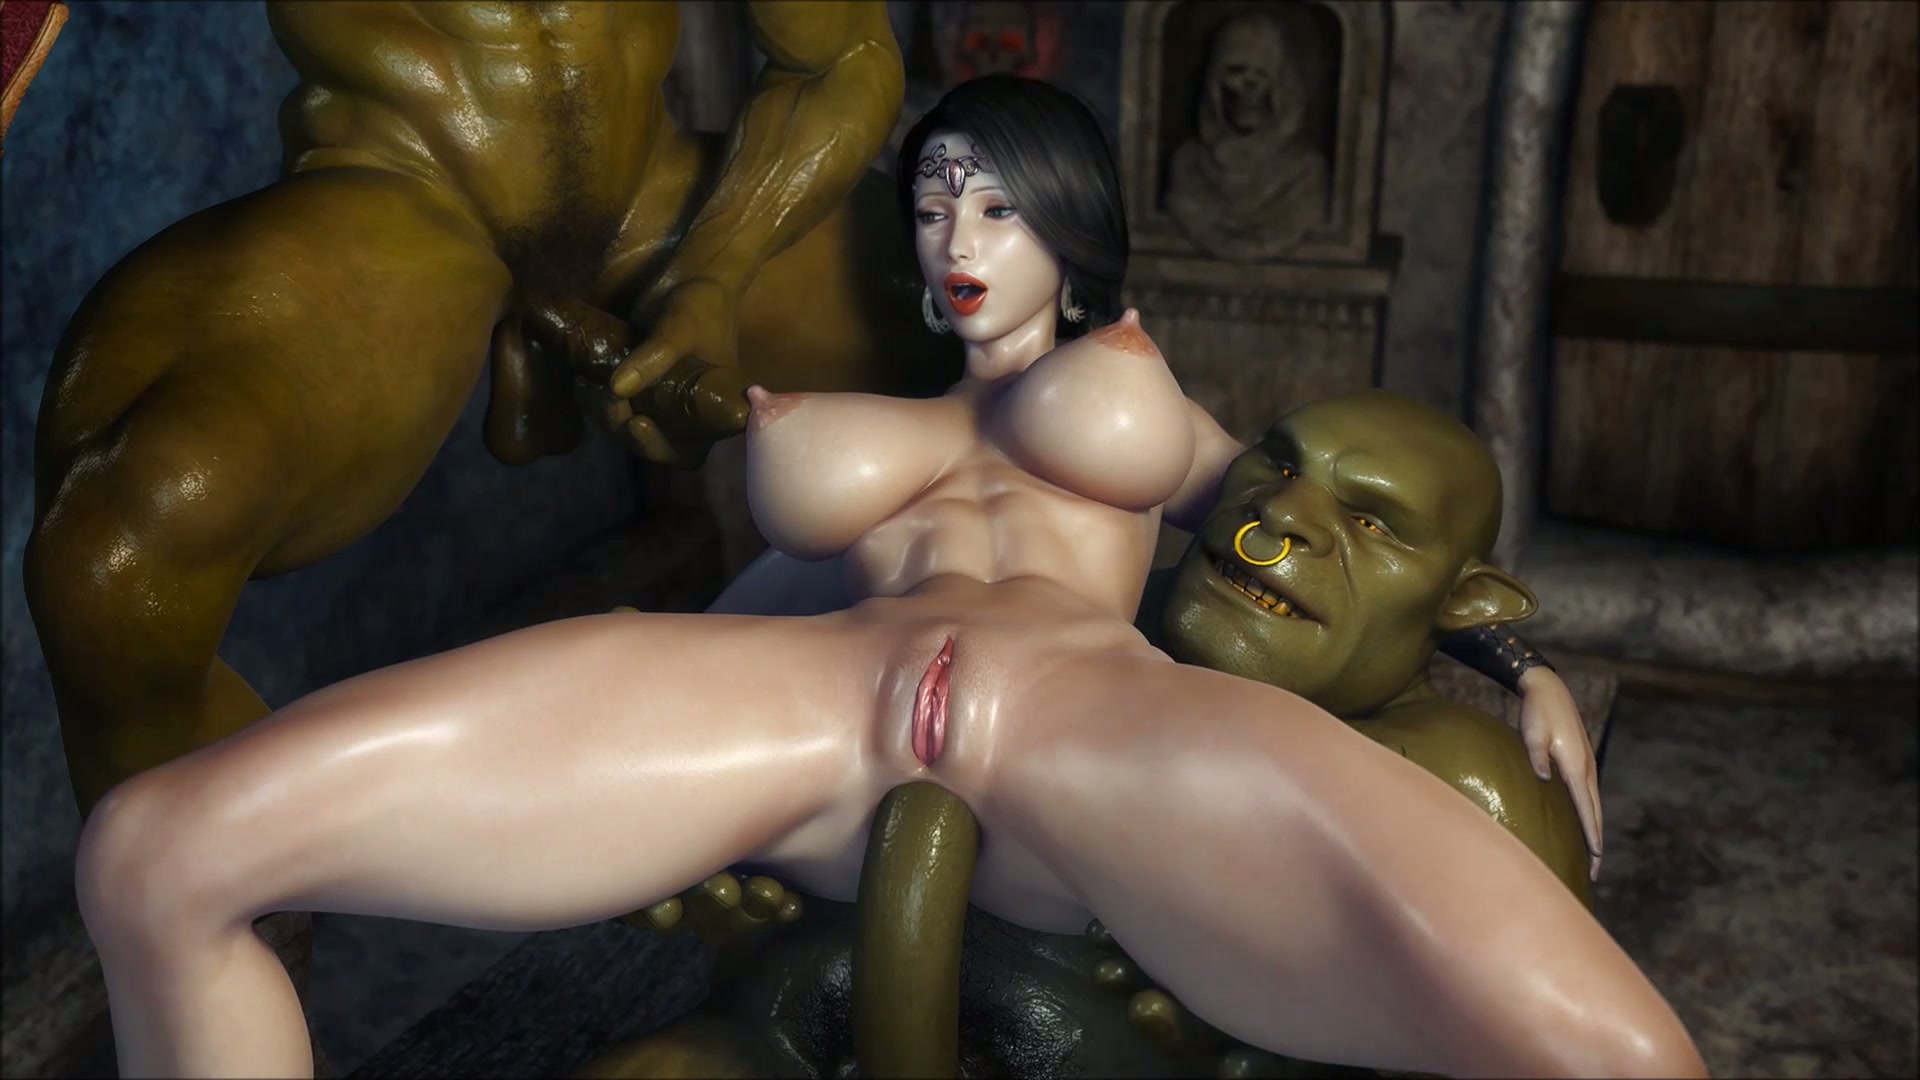 Monster fucks girl 3d nude photos